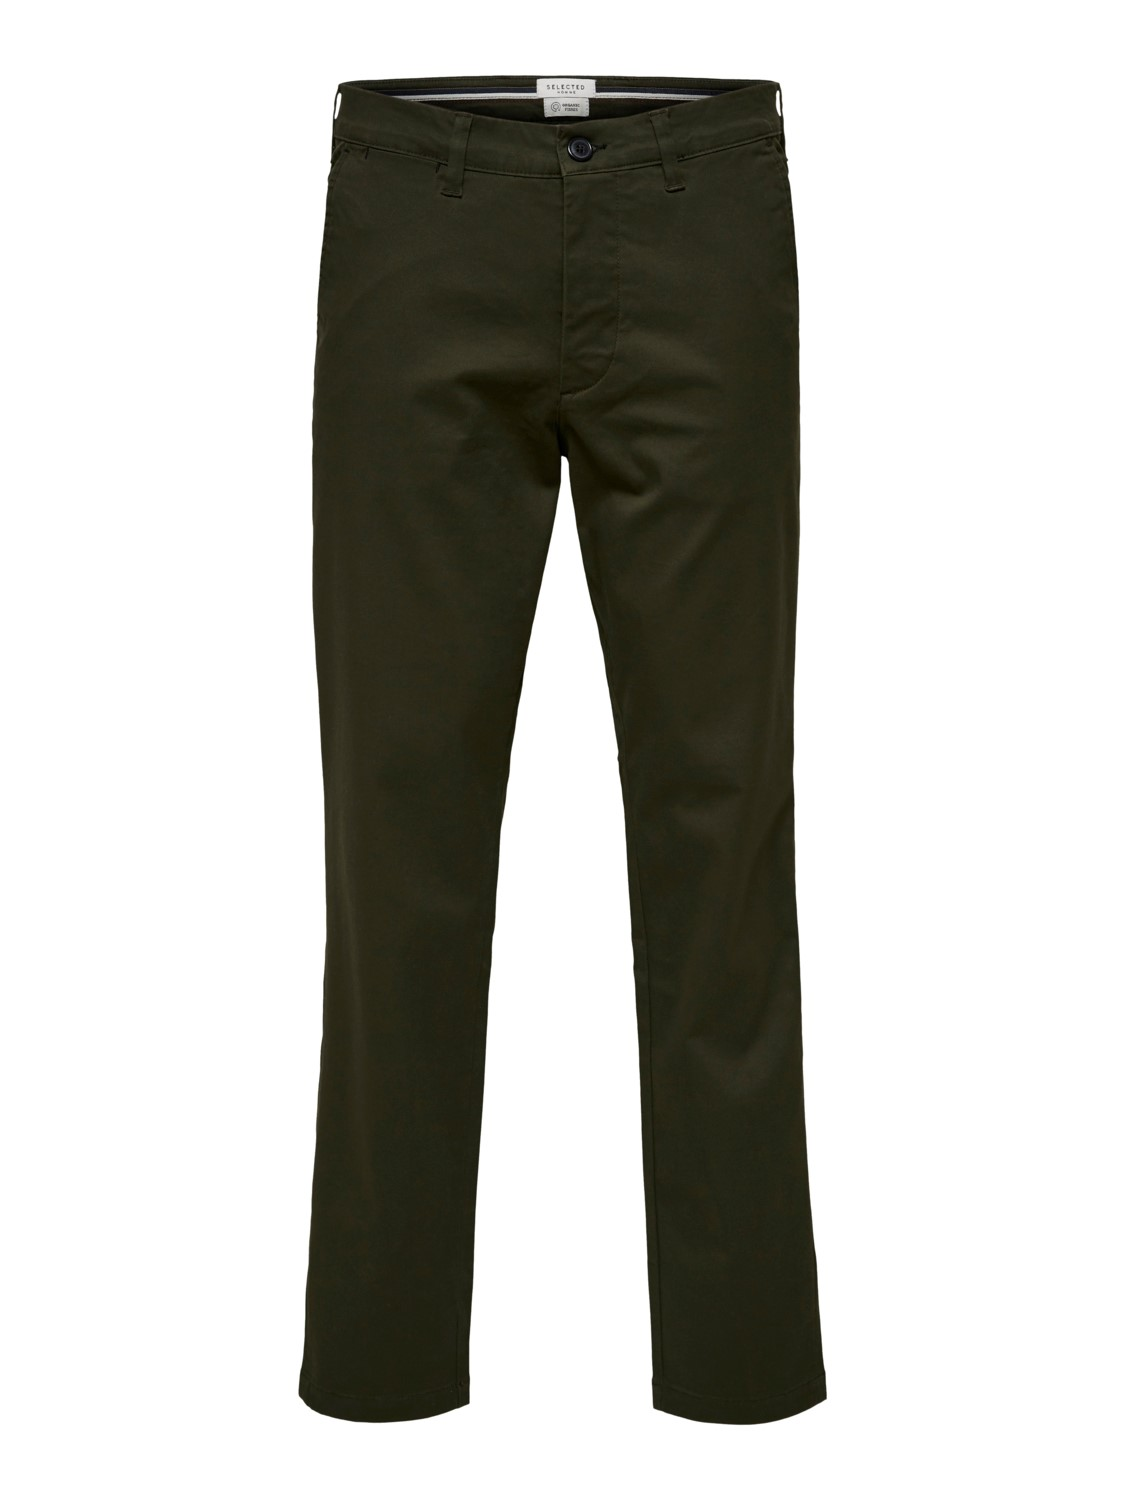 Selected Chino´s flex pants forest night | Gate36 Hobro